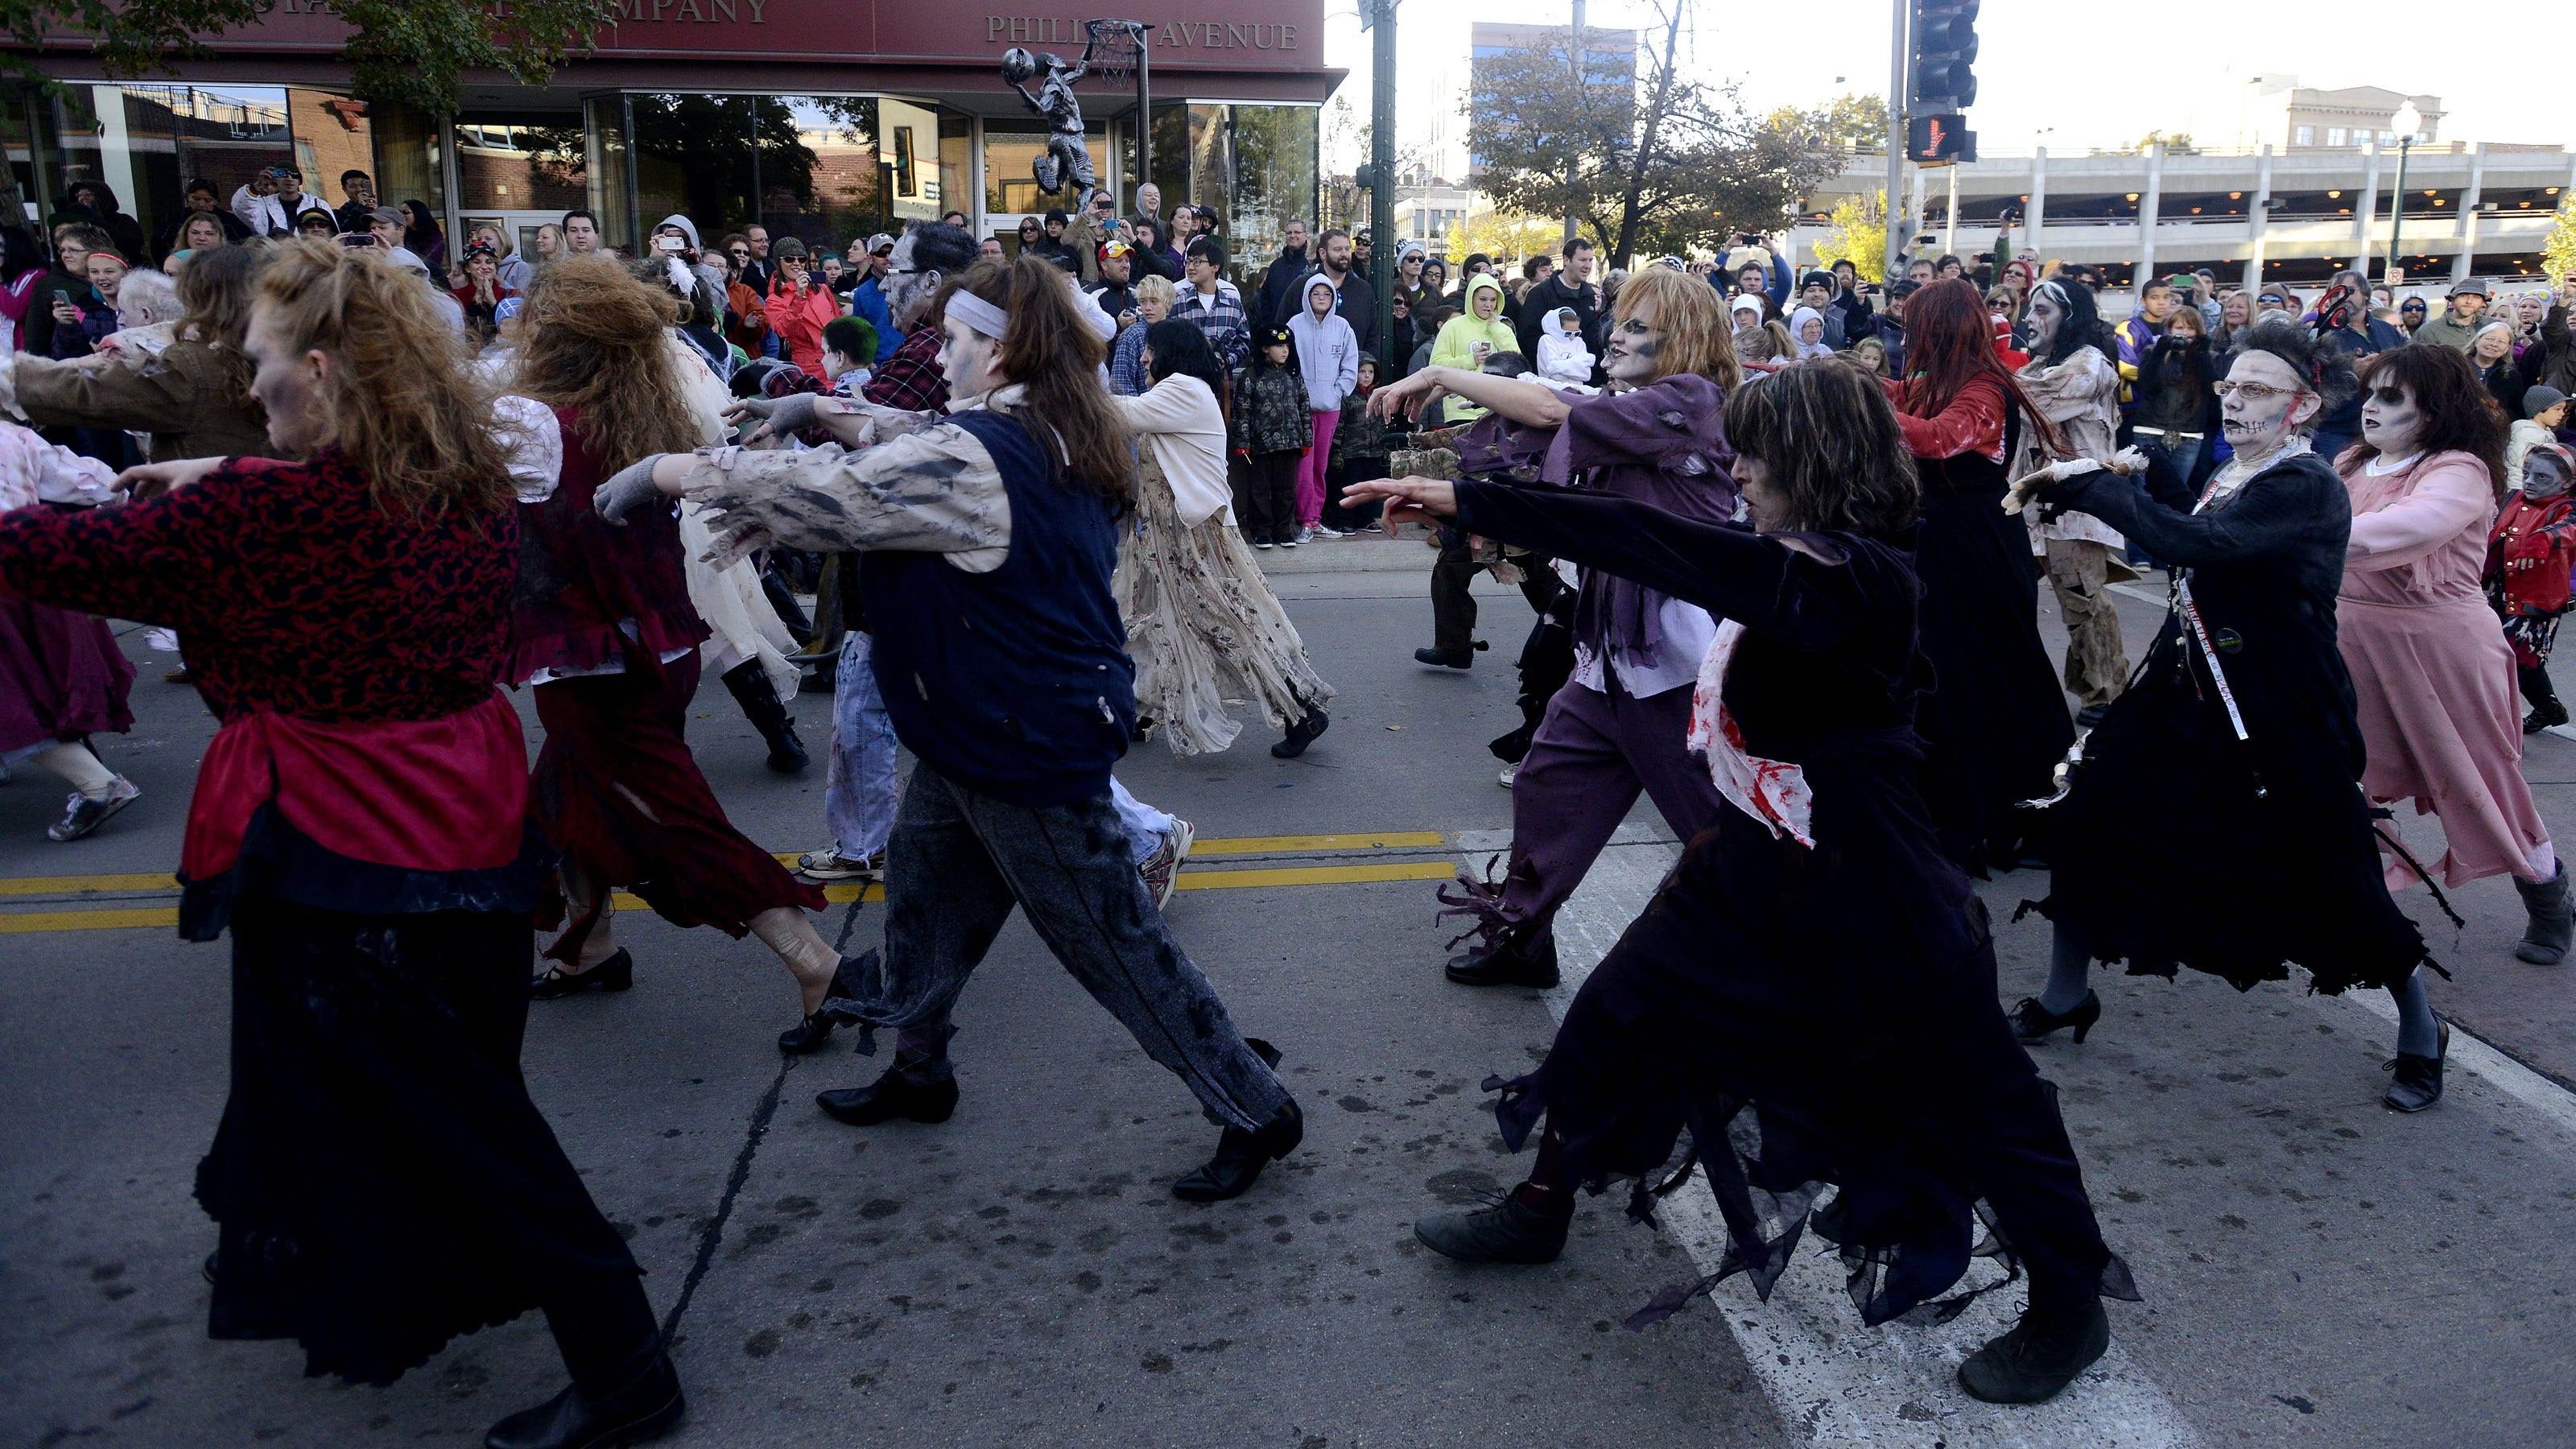 halloween roundup: festivities underway